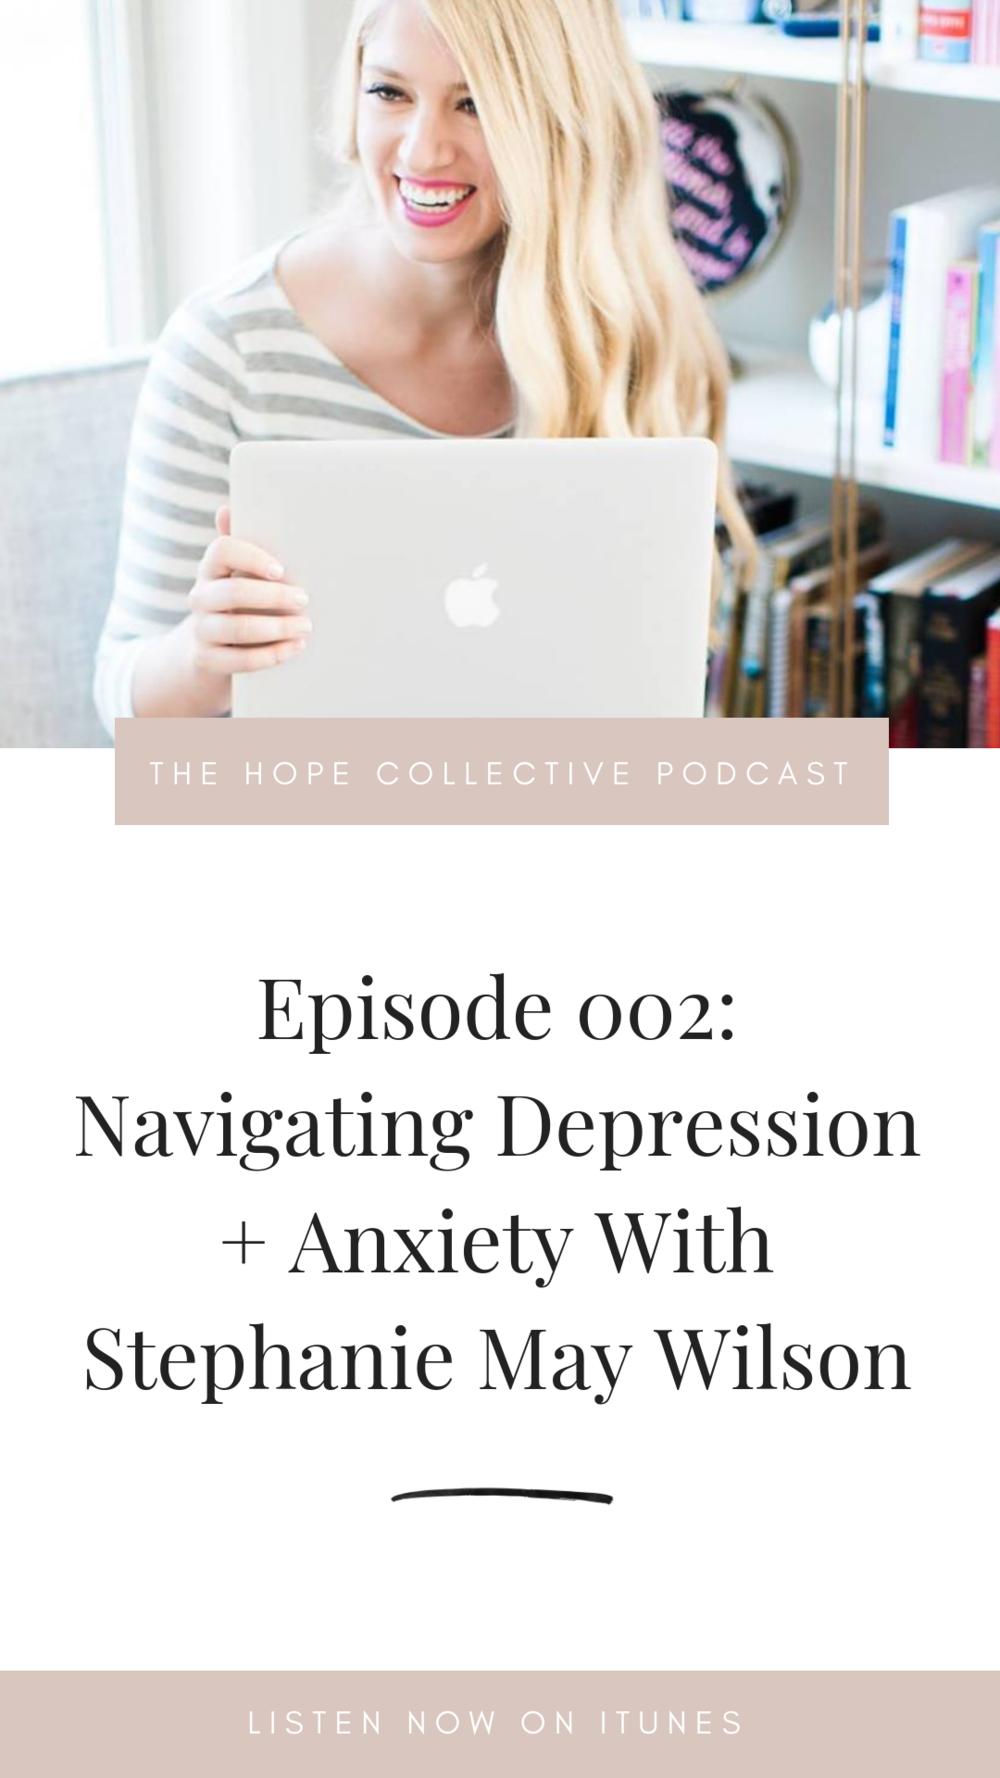 THE HOPE COLLECTIVE PODCAST - NAVIGATING DEPRESSION + ANXIETY WITH STEPHANIE MAY WILSON